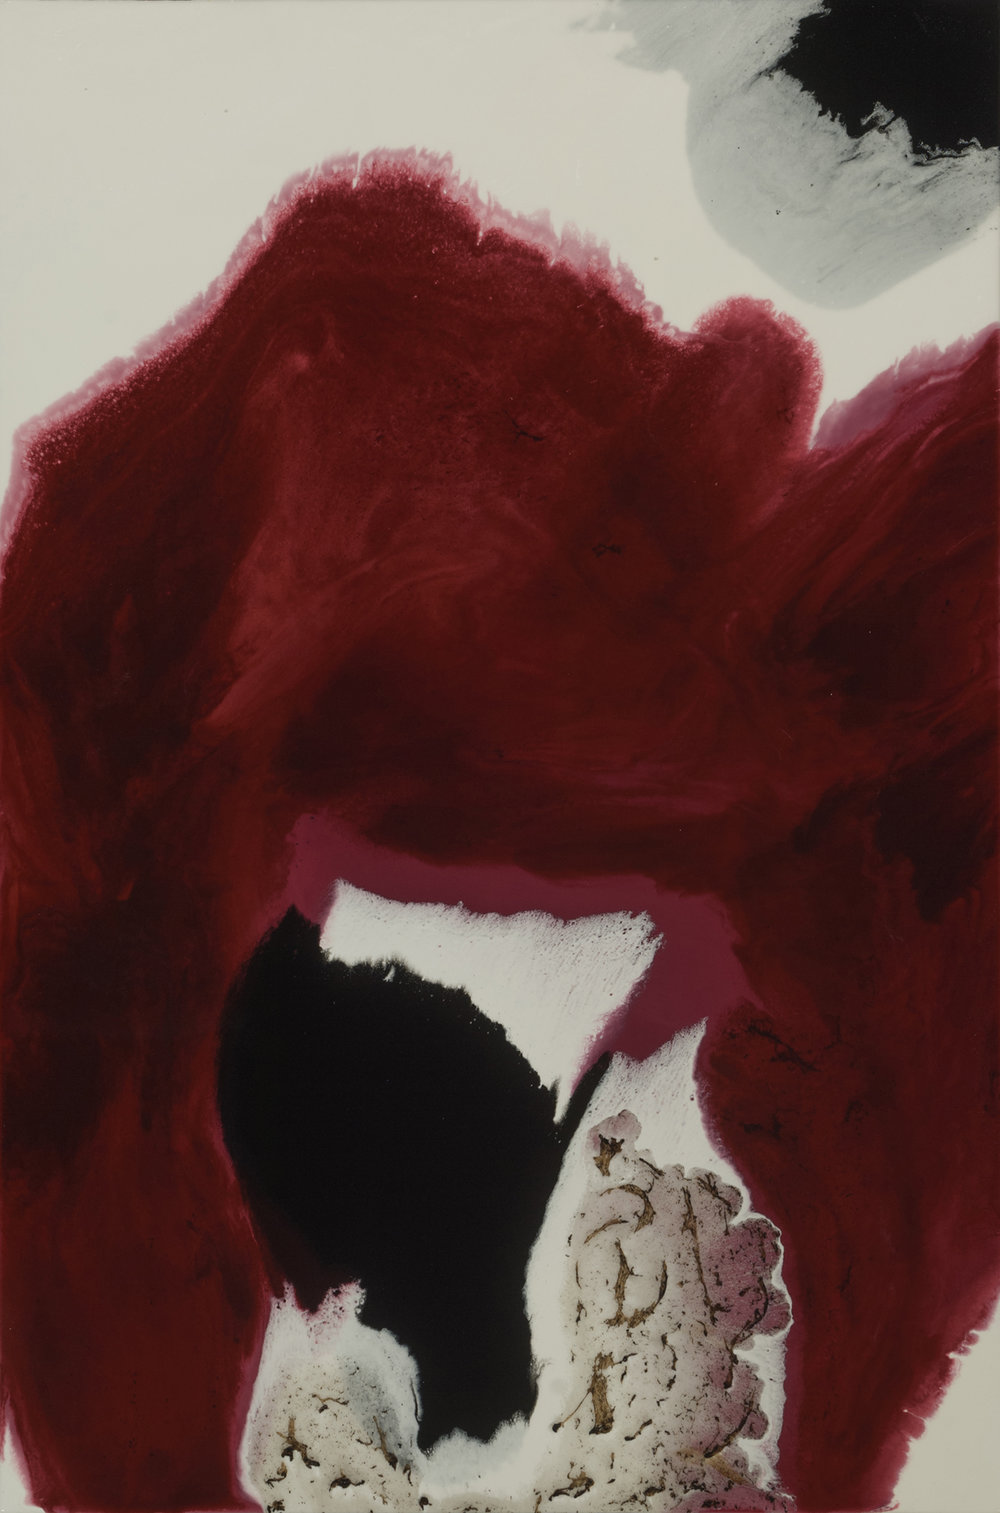 Patricia Finley  Crimson Kiss 1  acrylic and resin on panel  36x24